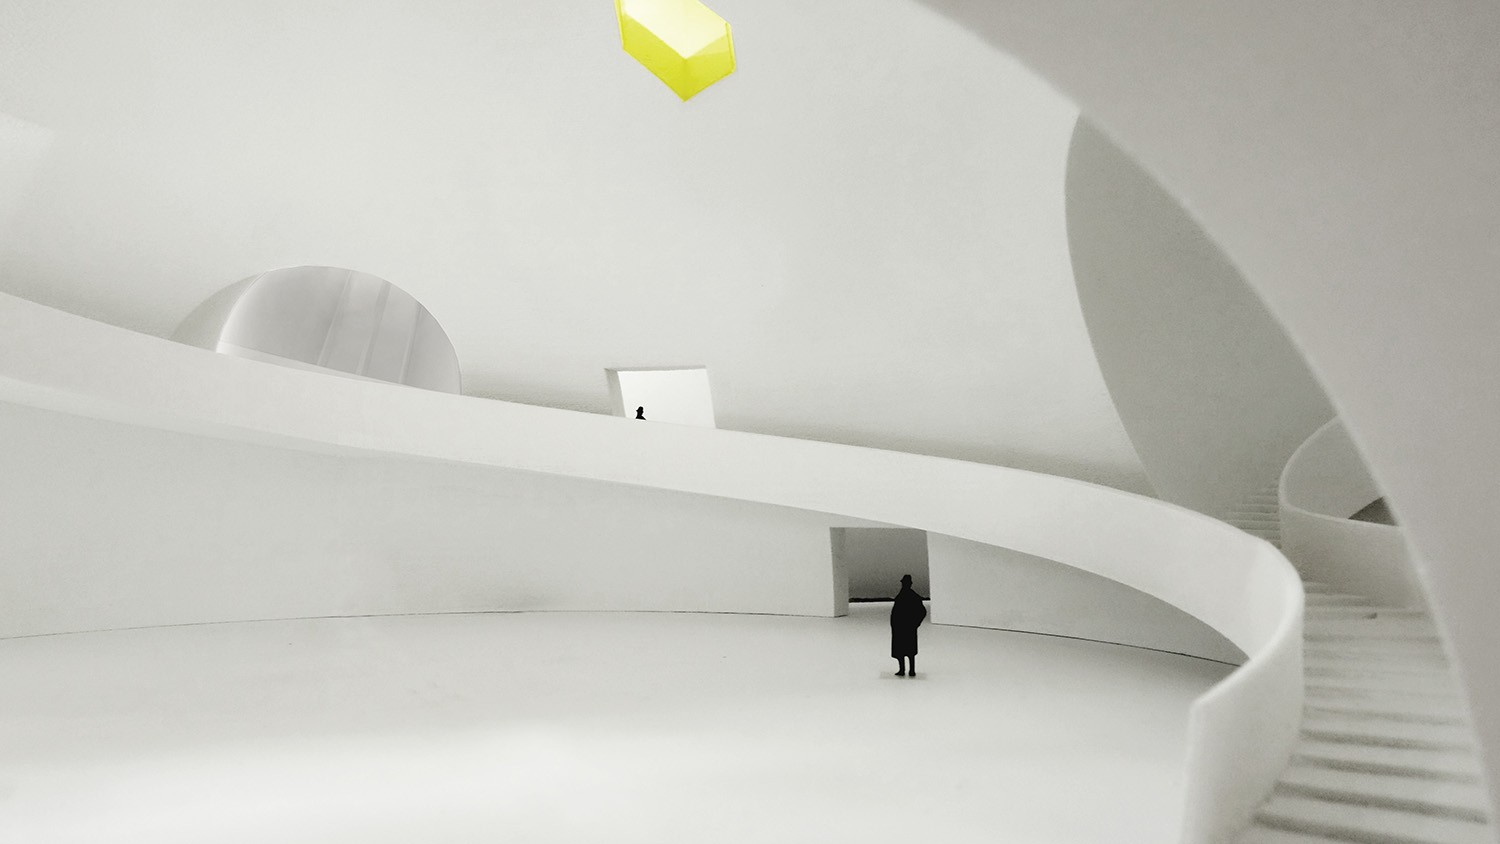 https://stevenholl.sfo2.digitaloceanspaces.com/uploads/projects/project-images/StevenHollArchitects_Necropolis_SHA_14_arrival hall-interior view_WH.jpg